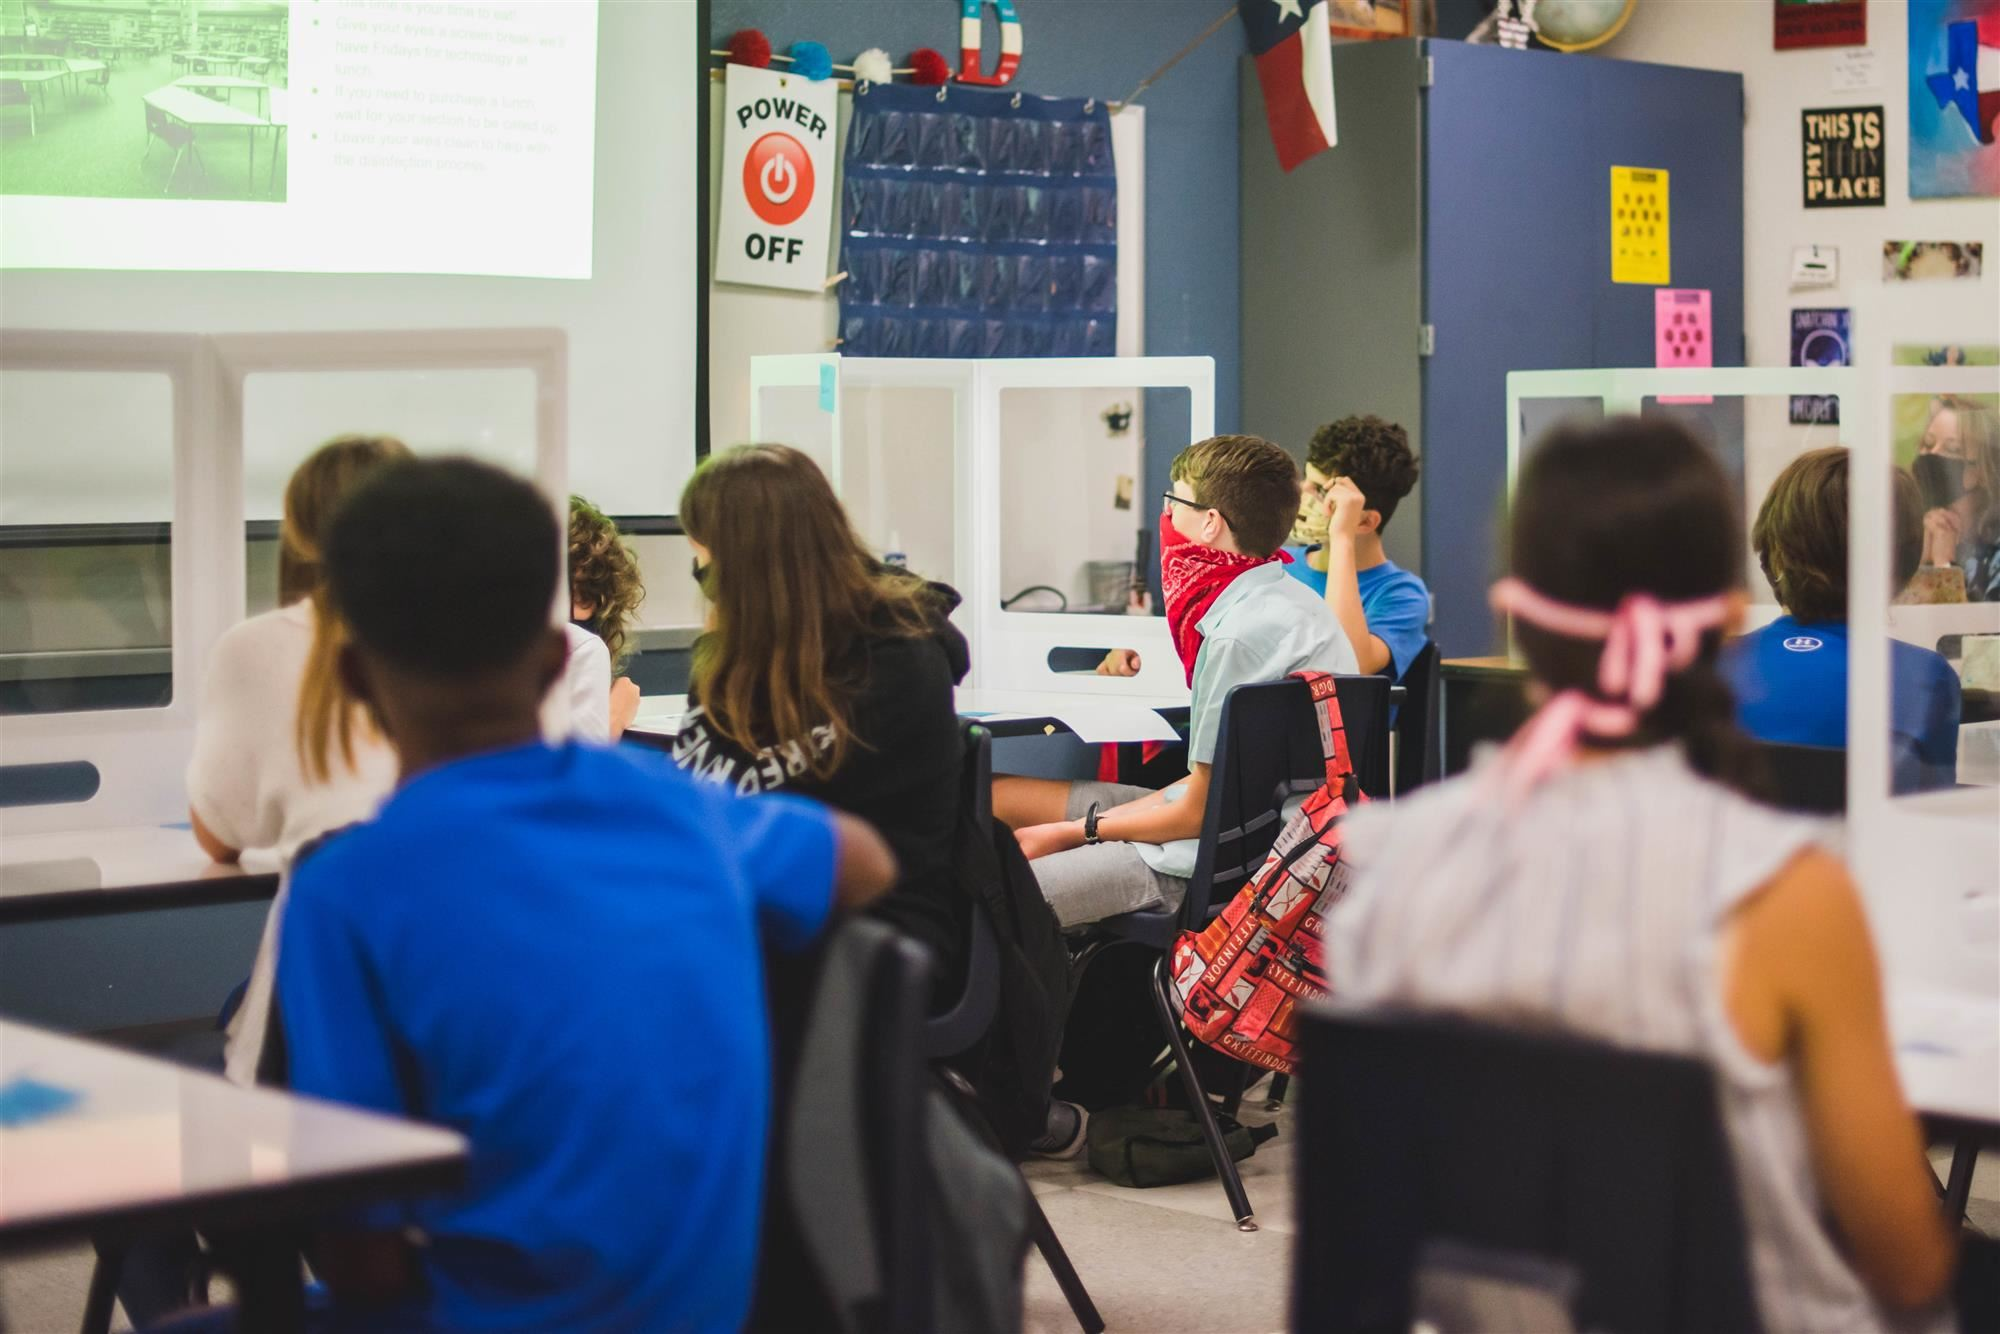 Class looks at projector on first day of school